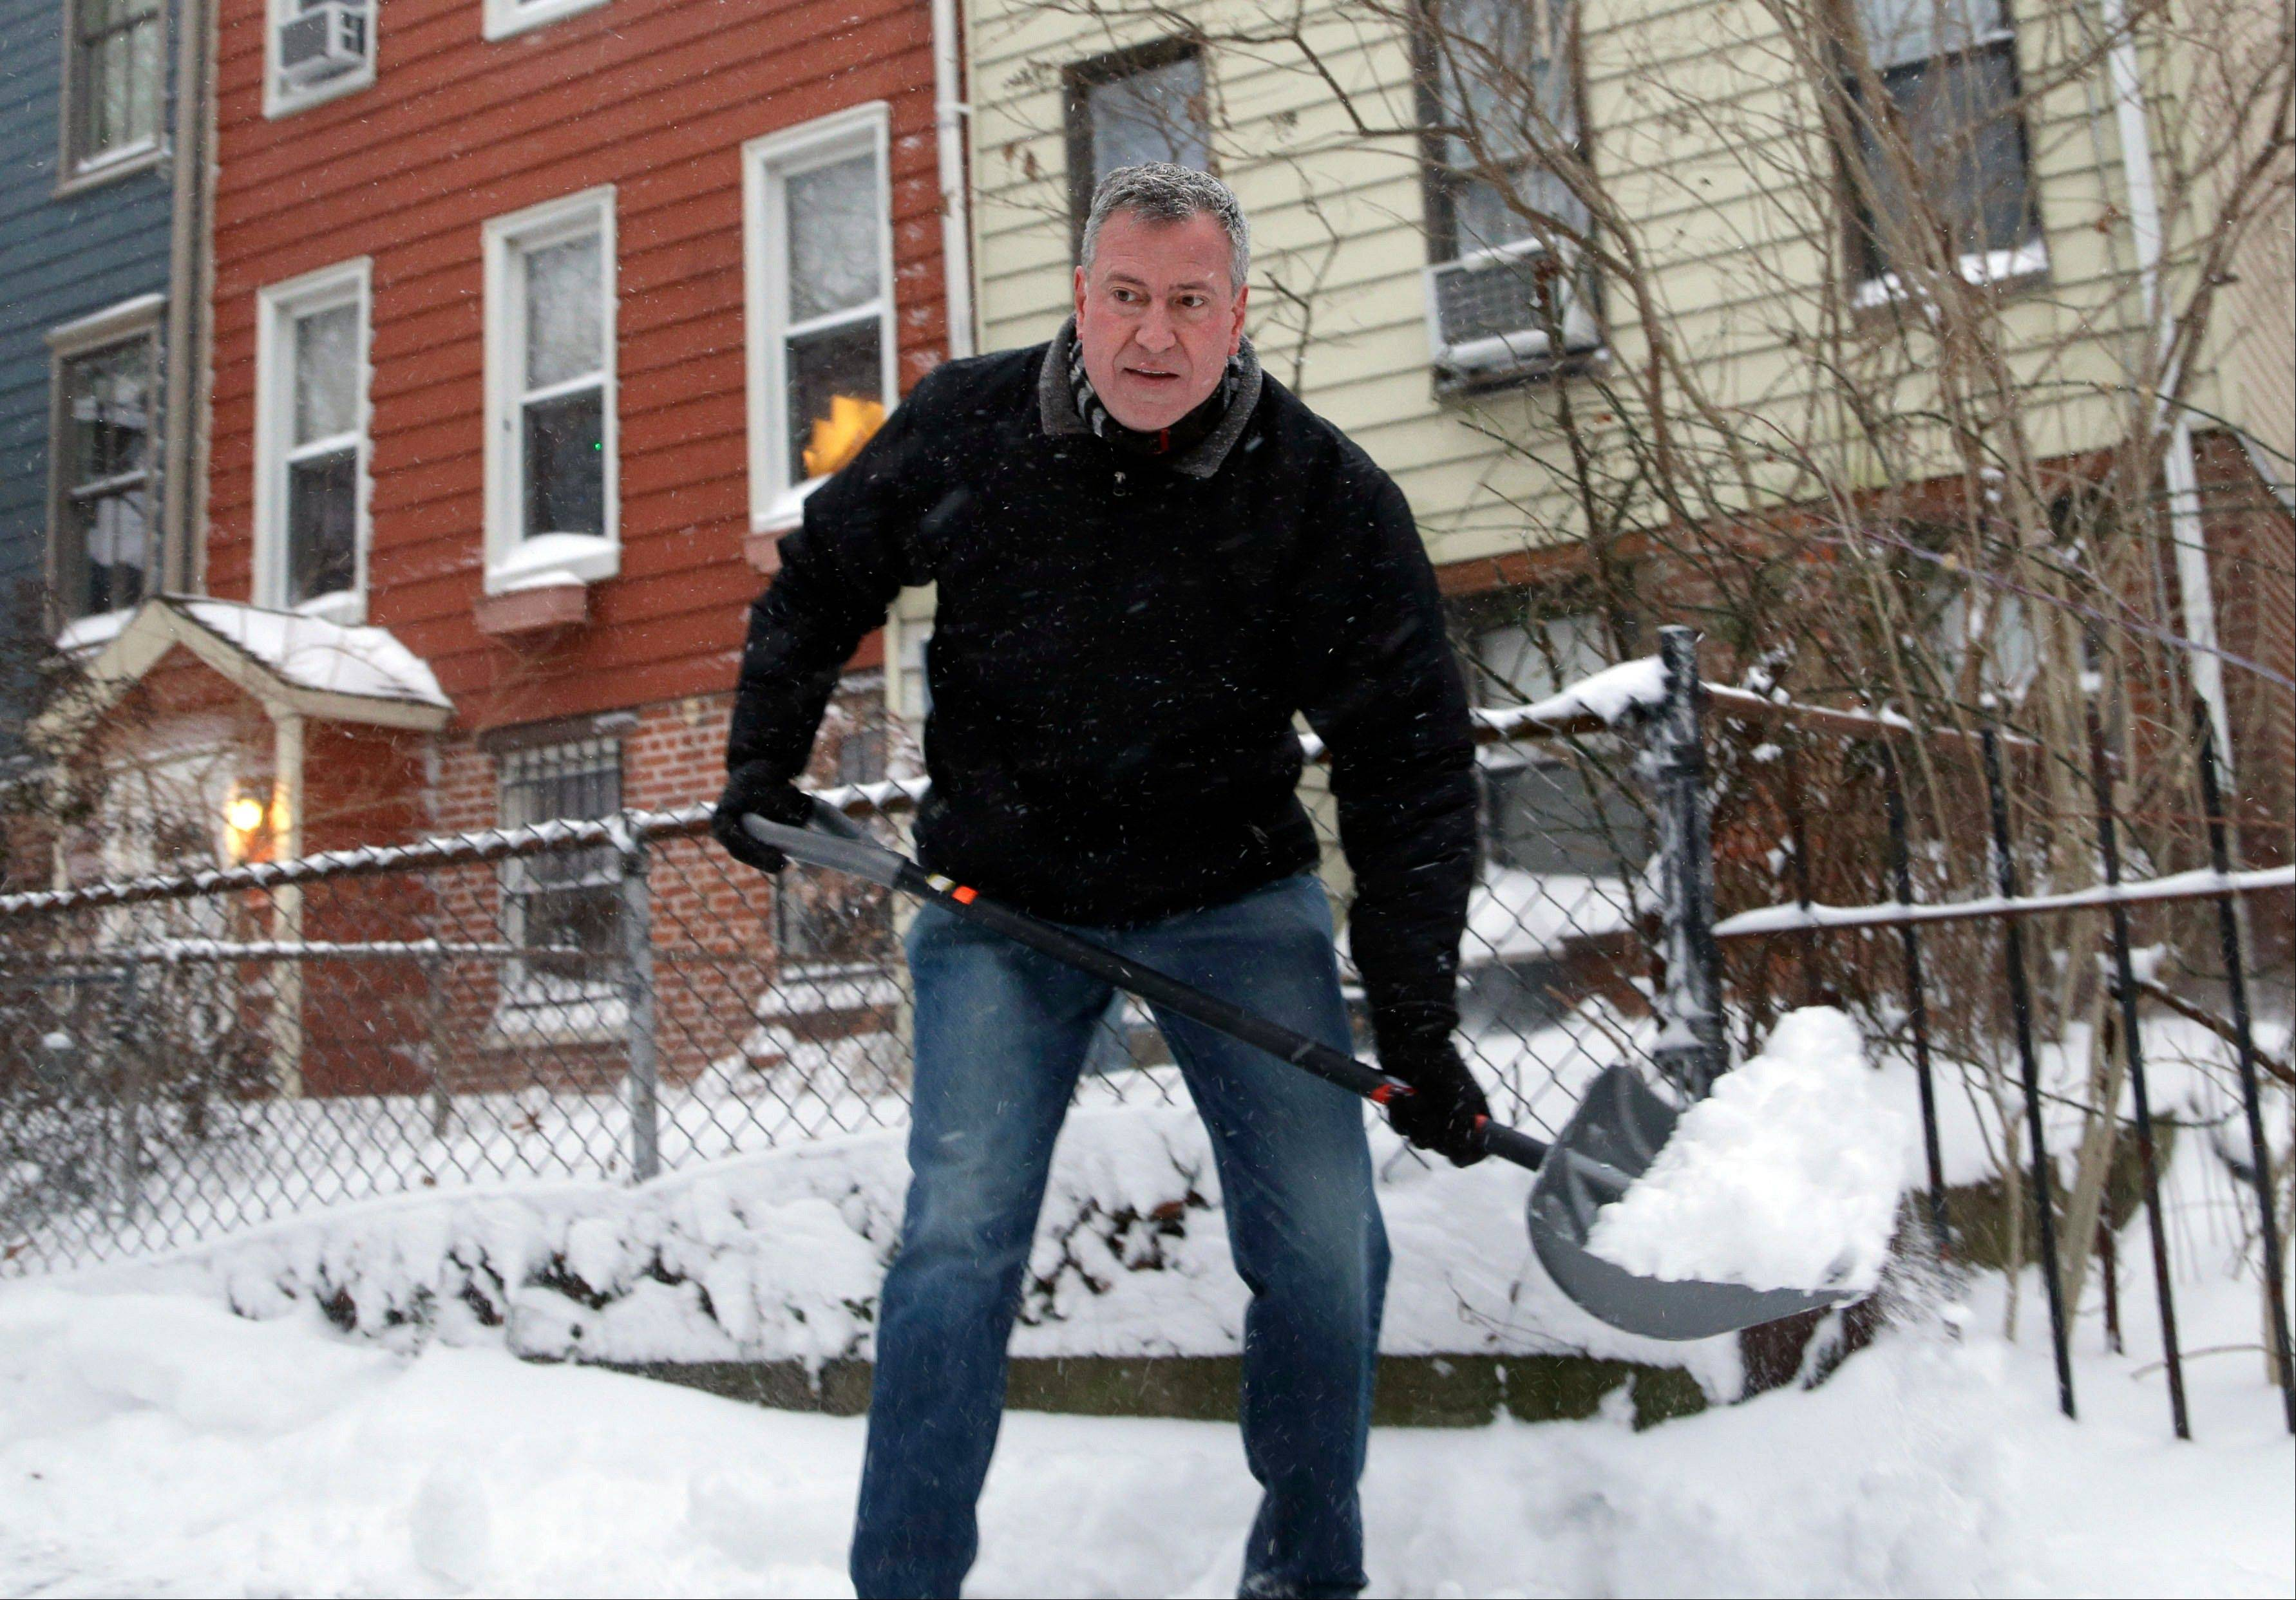 New York City Mayor Bill de Blasio shovels the sidewalk in front of his house in New York, Friday, Jan. 3, 2014. New York City public schools were closed Friday after up to 7 inches of snow fell by morning in the first snowstorm of the winter, and it the first test for the new mayor hours after he was sworn in.